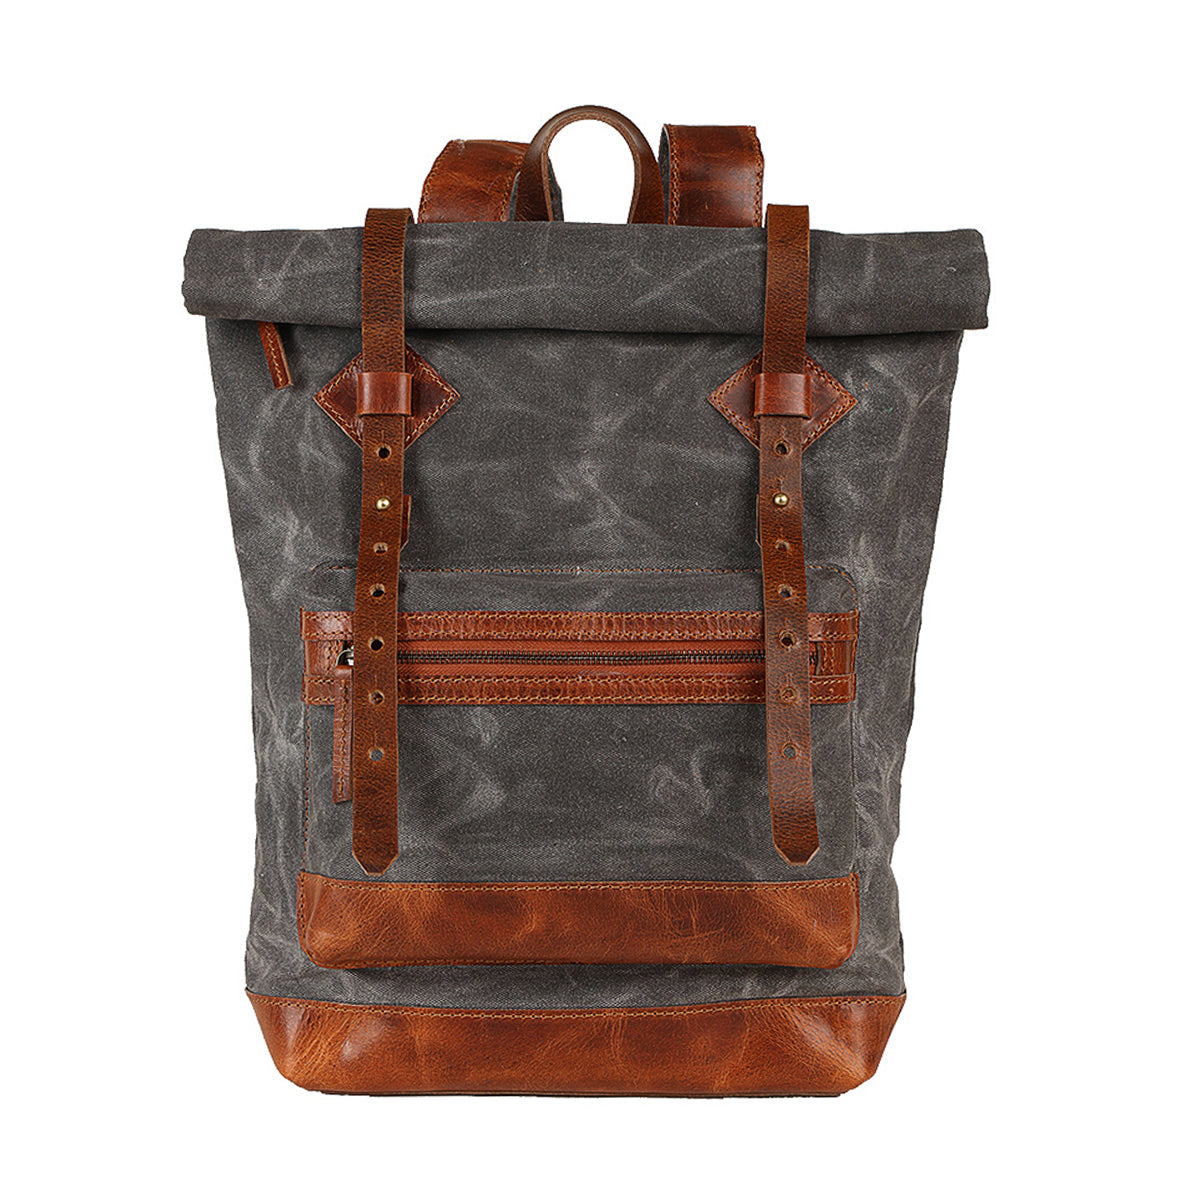 canvas backpack, wax canvas backpack, roll top backpack, man leather backpack, hike backpack, adventure backpack, canvas backpack man United States